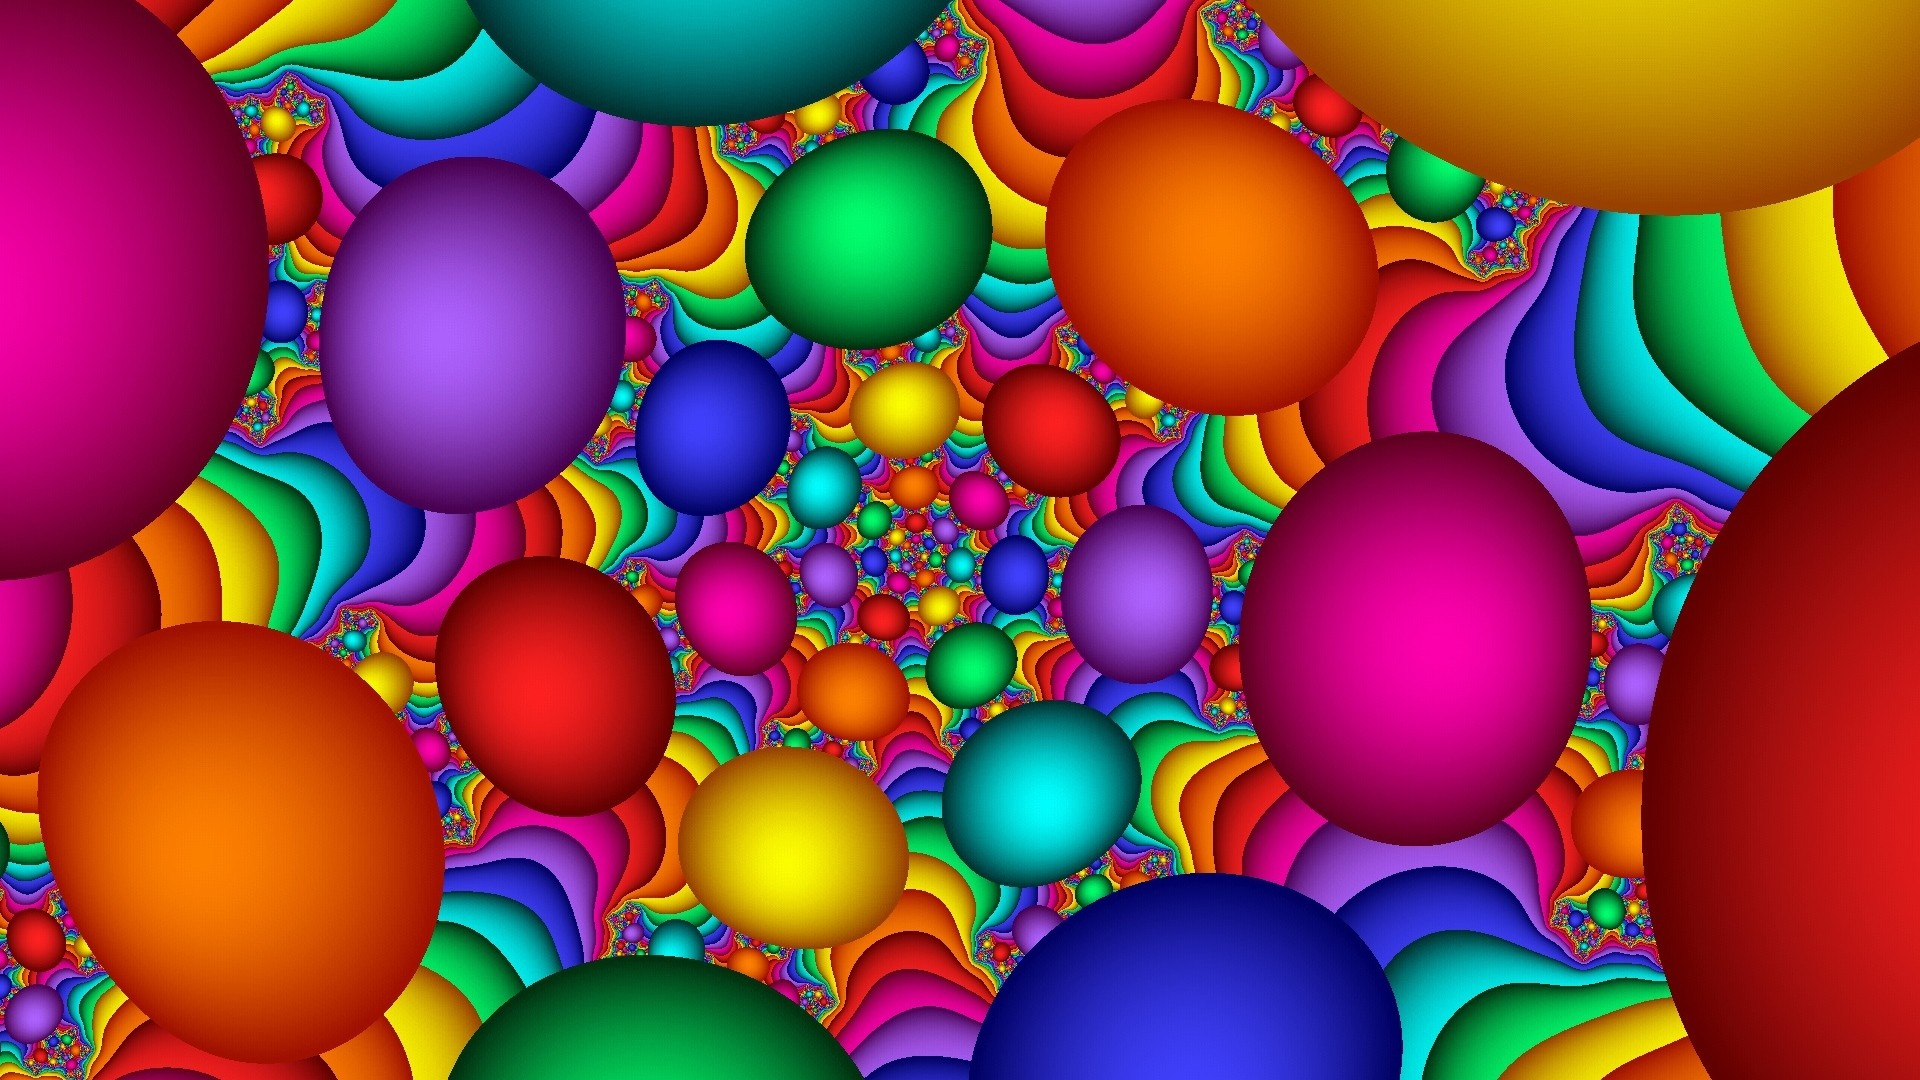 Wallpaper balloons, colorful, background, bright